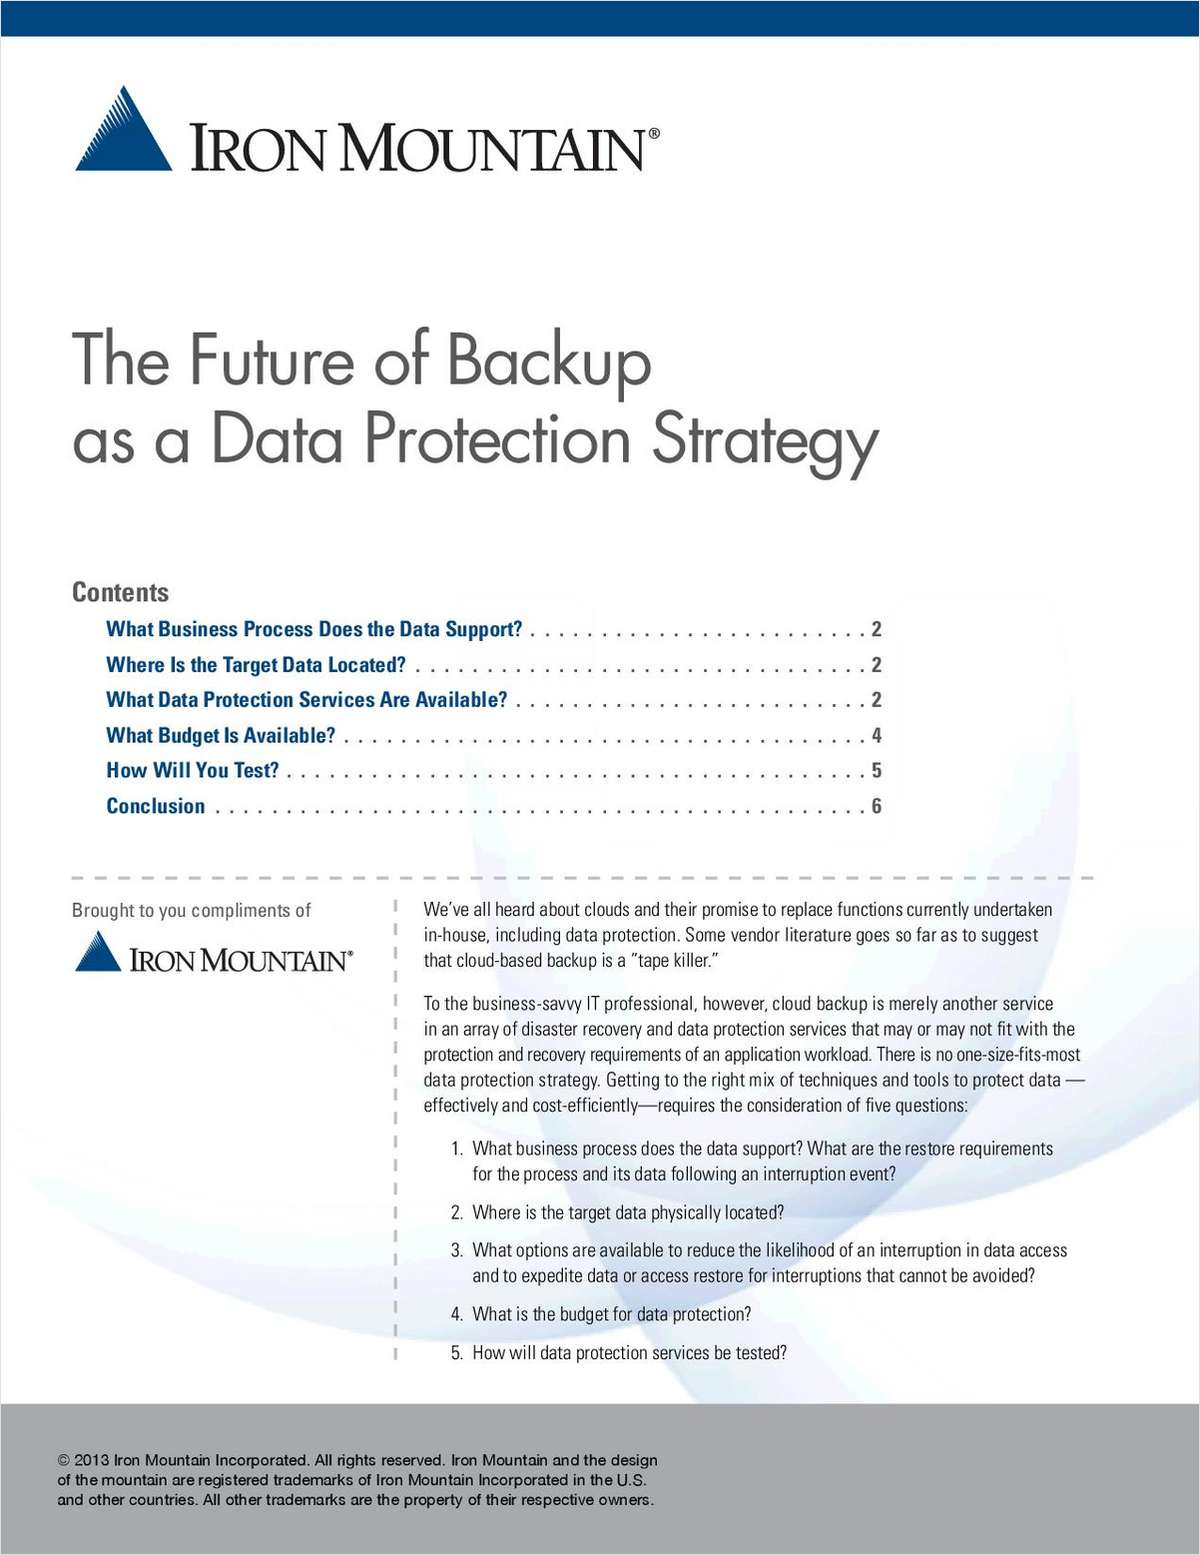 The Future of Backup as a Data Protection Strategy